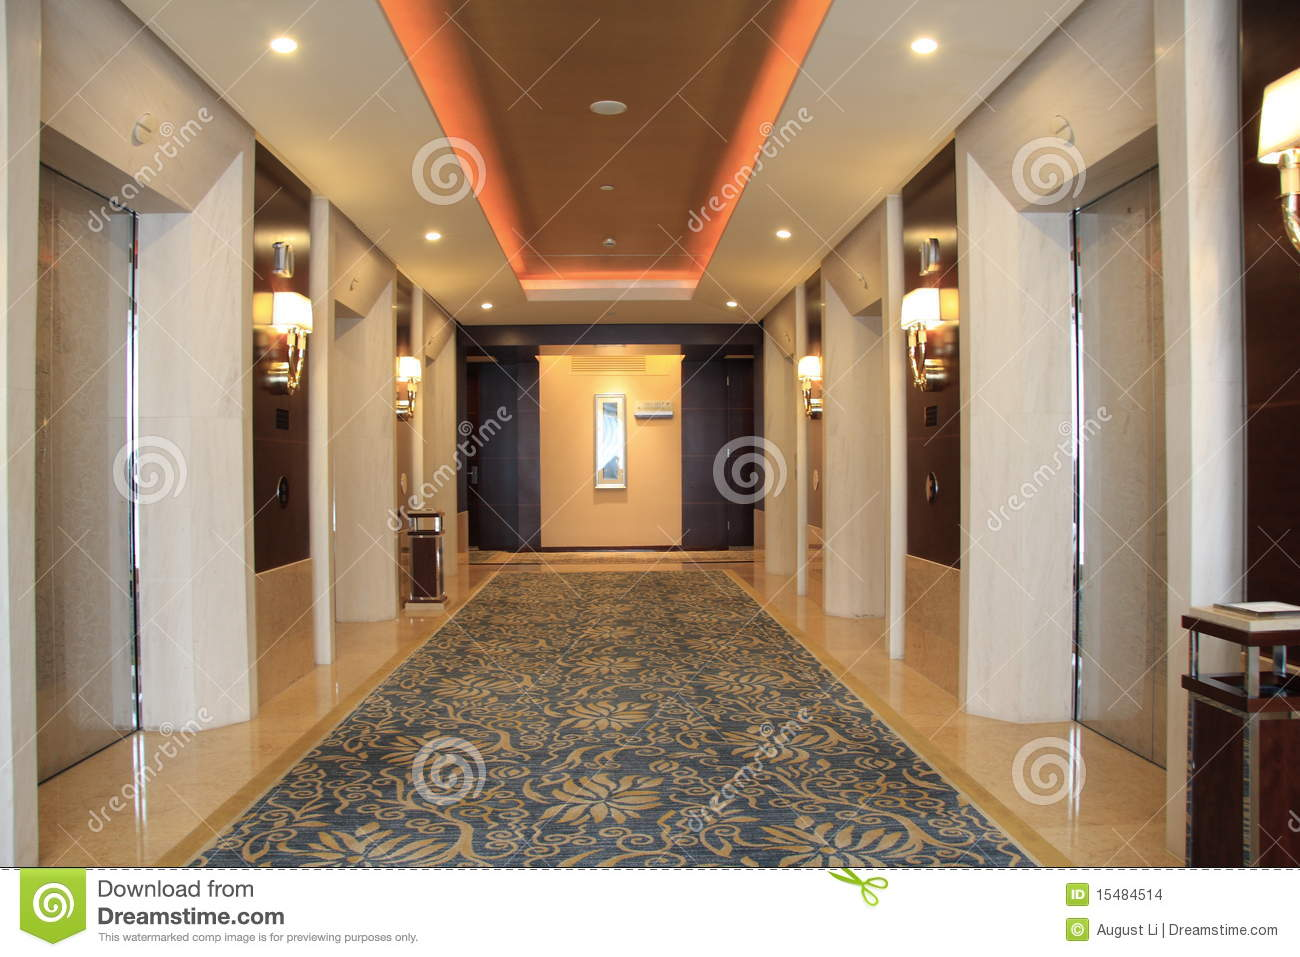 Elevator hall stock photo. Image of moving, metallic ...